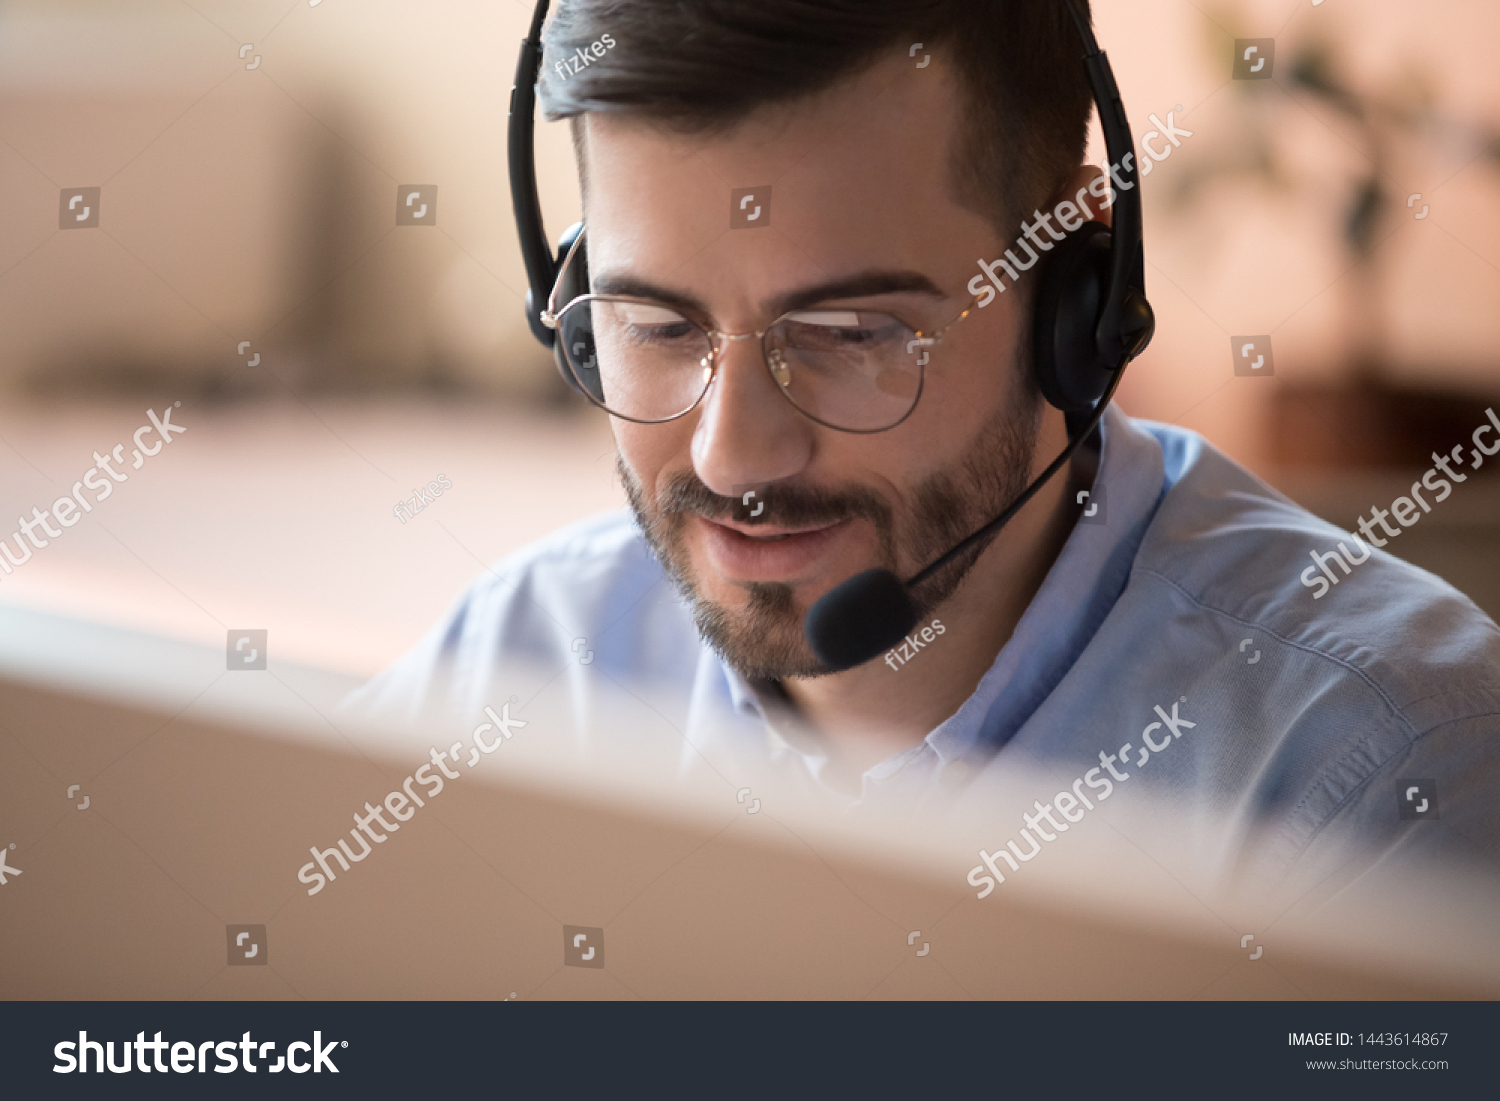 Focused businessman telemarketer telesales agent wear wireless headset make conference video call talk consult online client on computer, male helpline operator work in customer care support office #1443614867